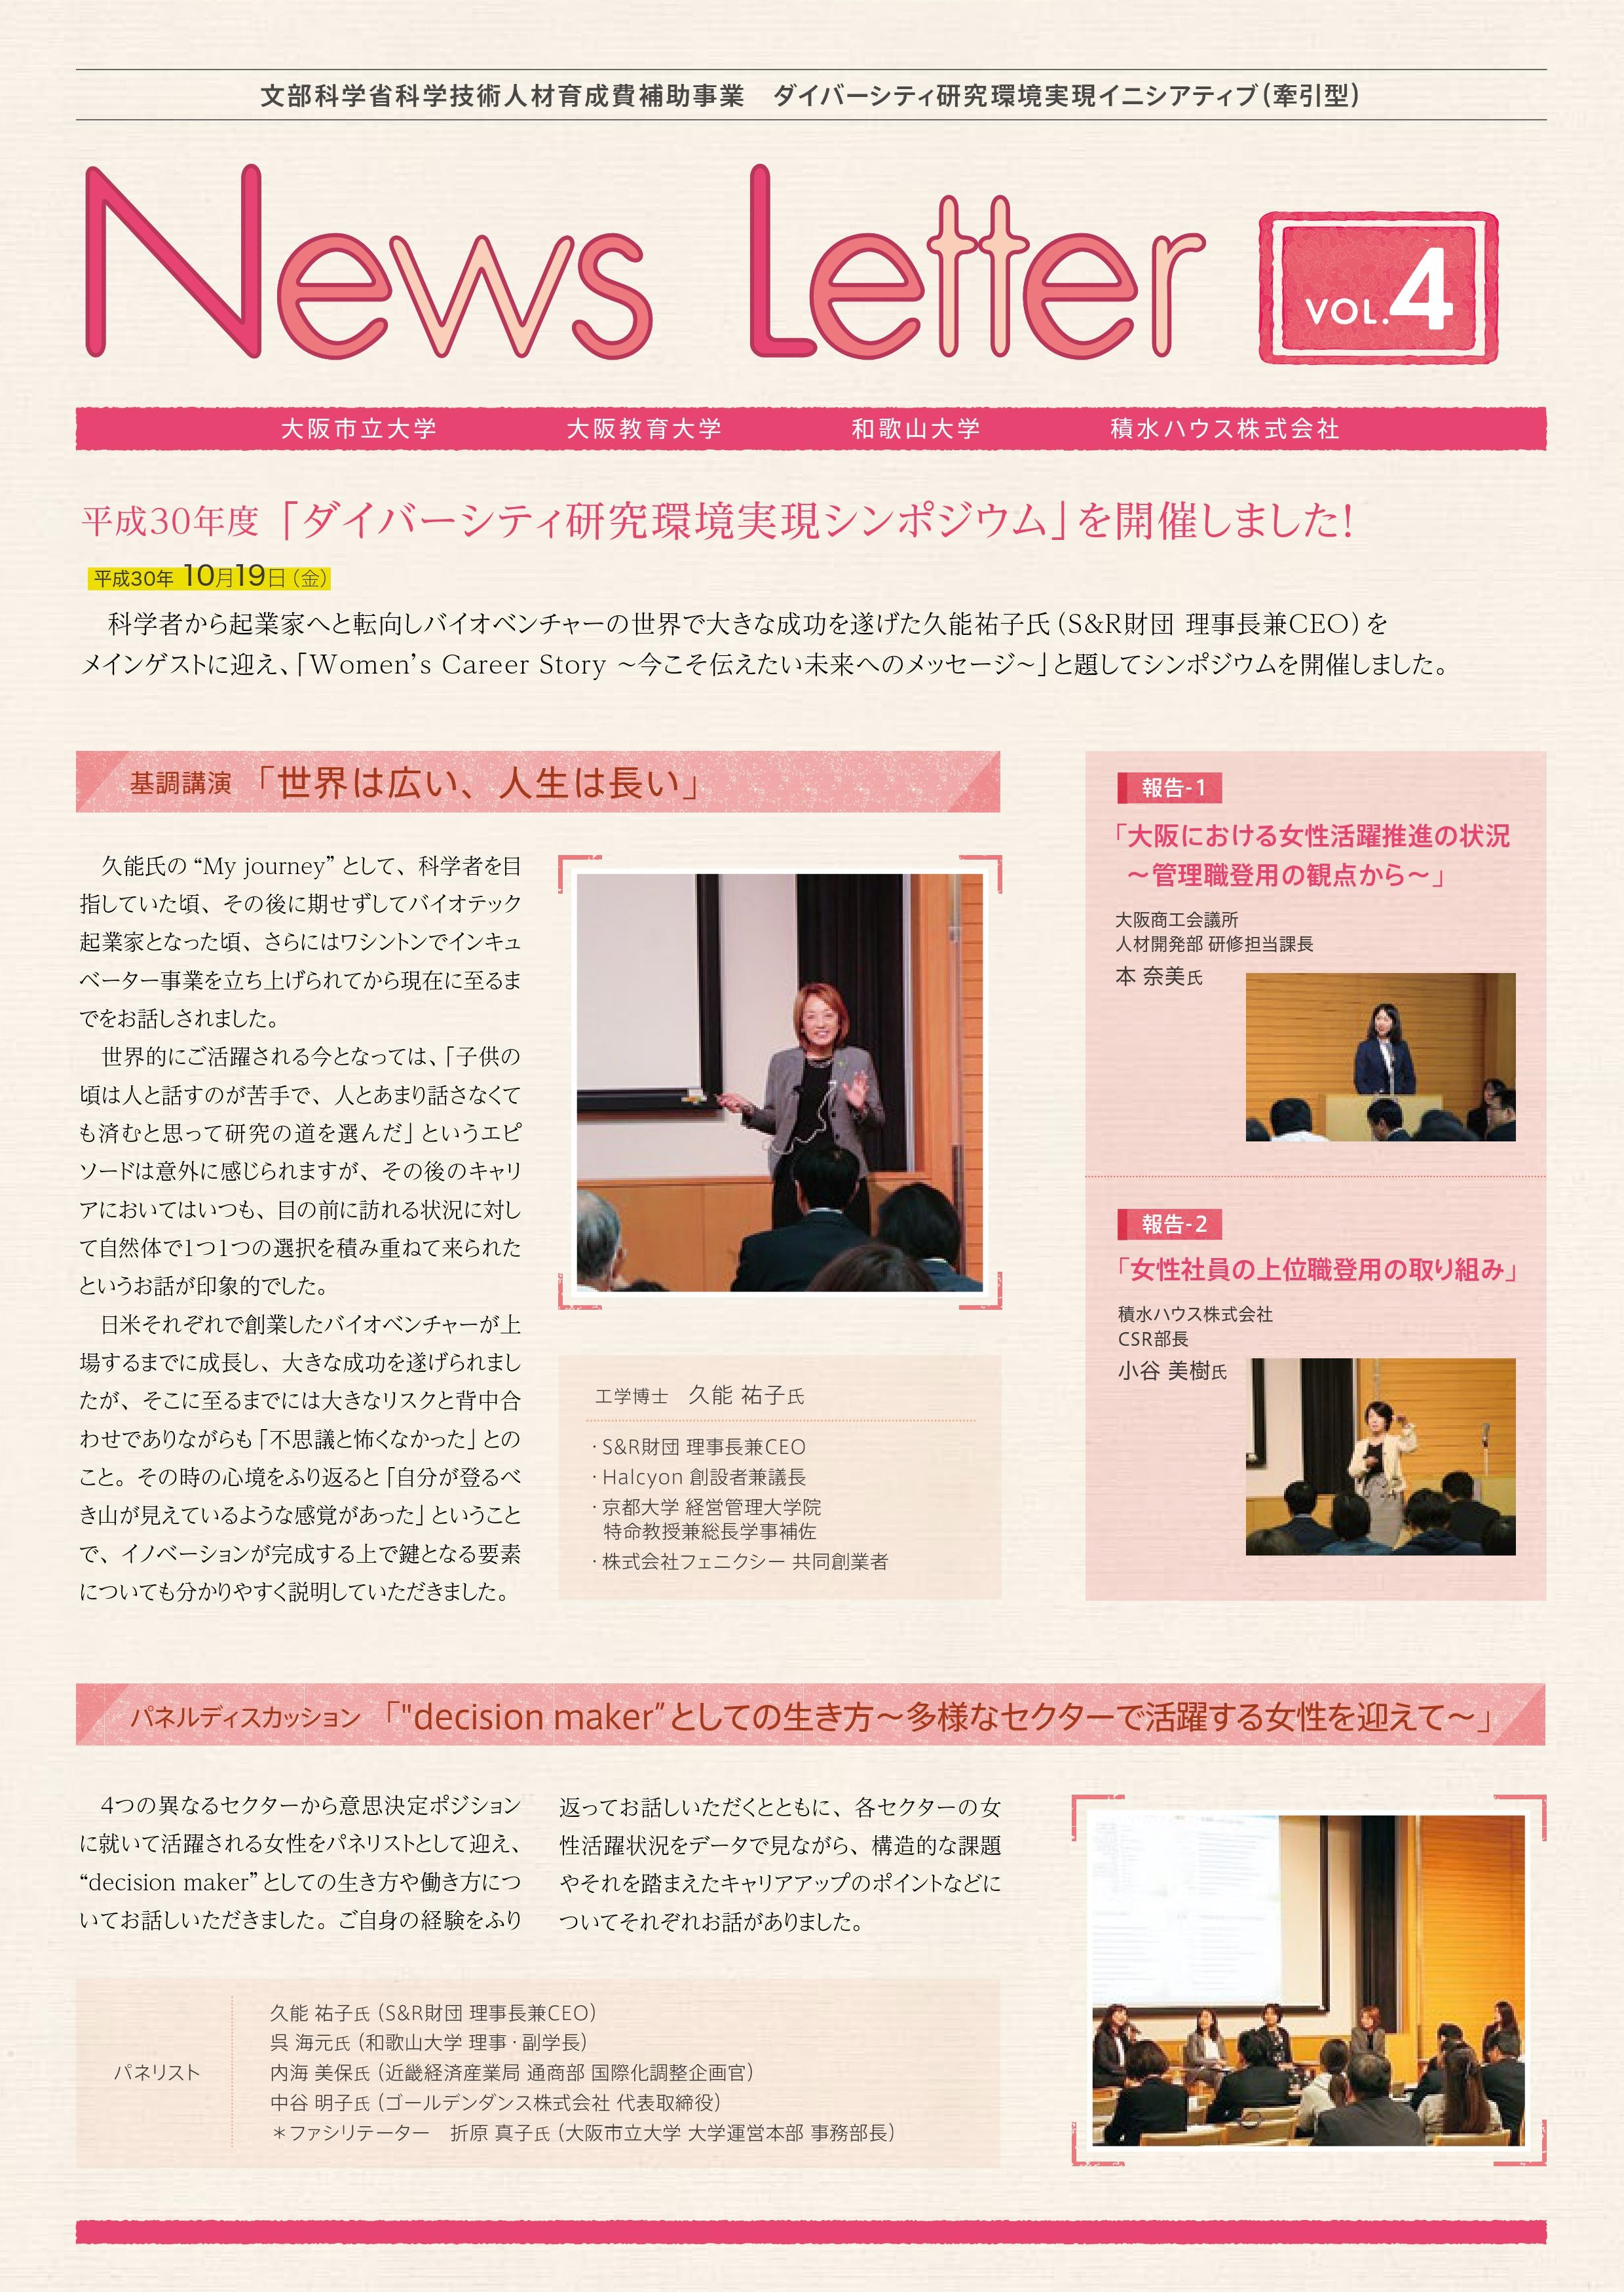 NewsLetter_vol4